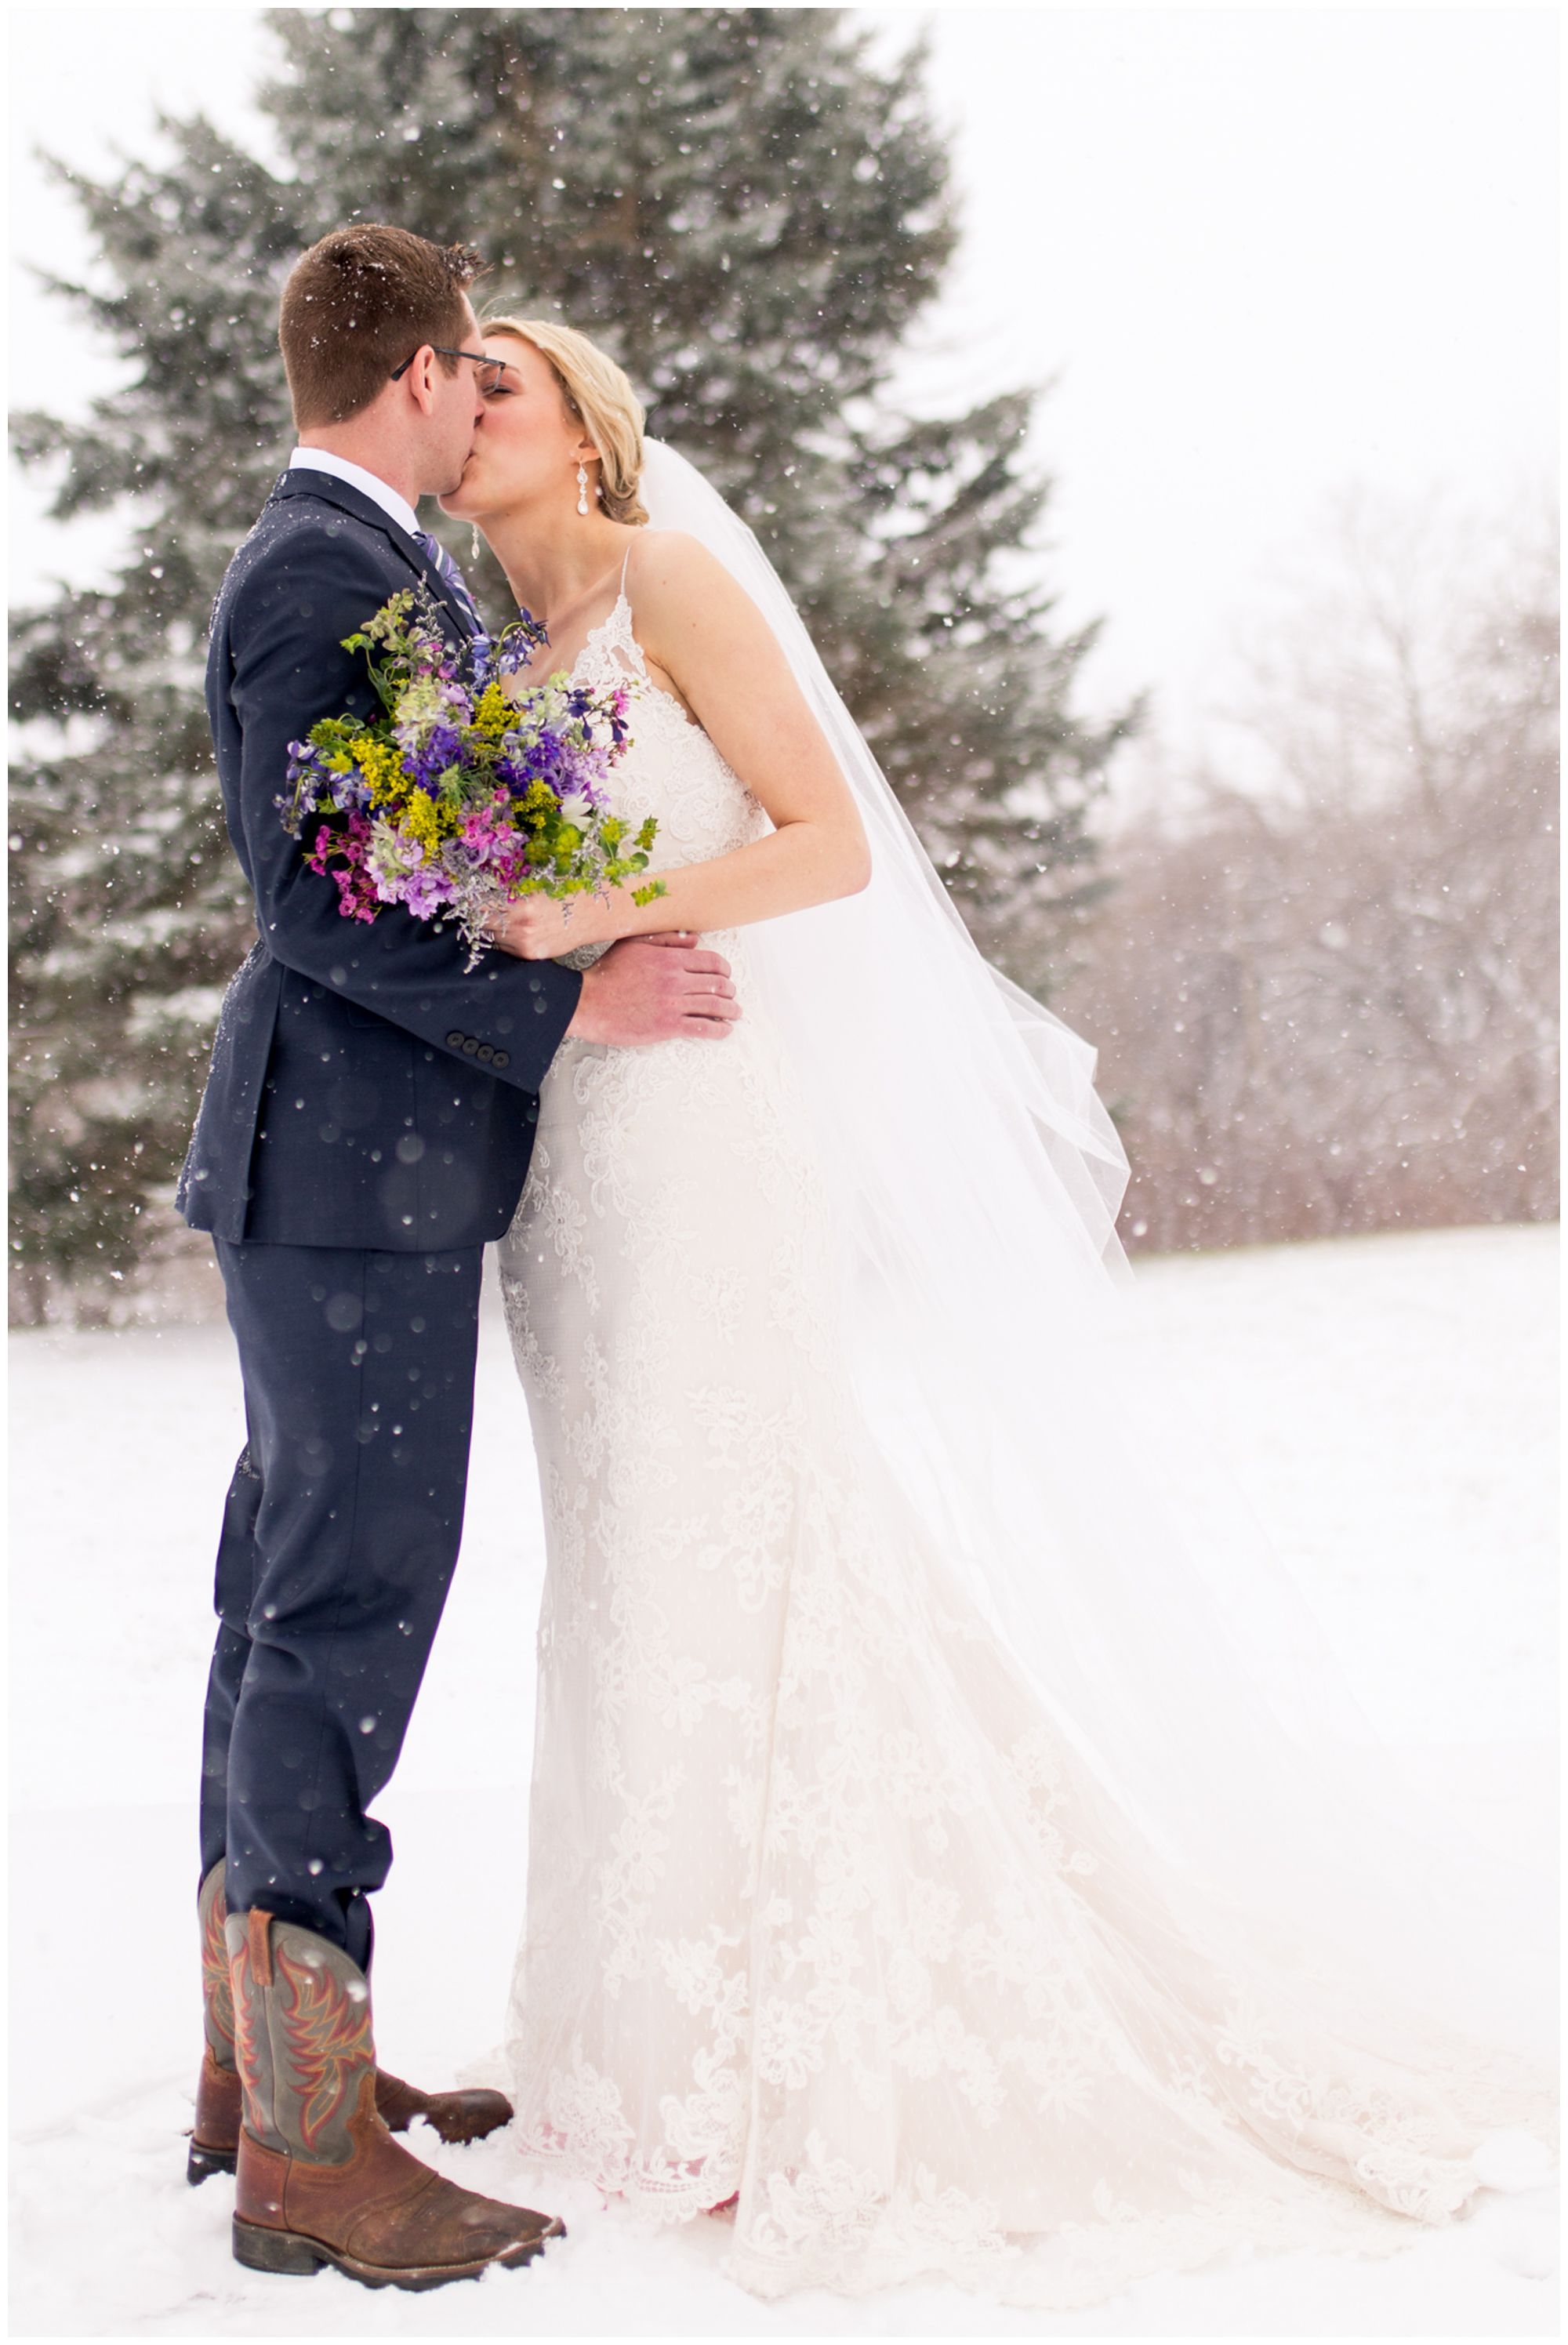 bride and groom snow wedding photos at Mustard Seed Gardens in Noblesville Indiana